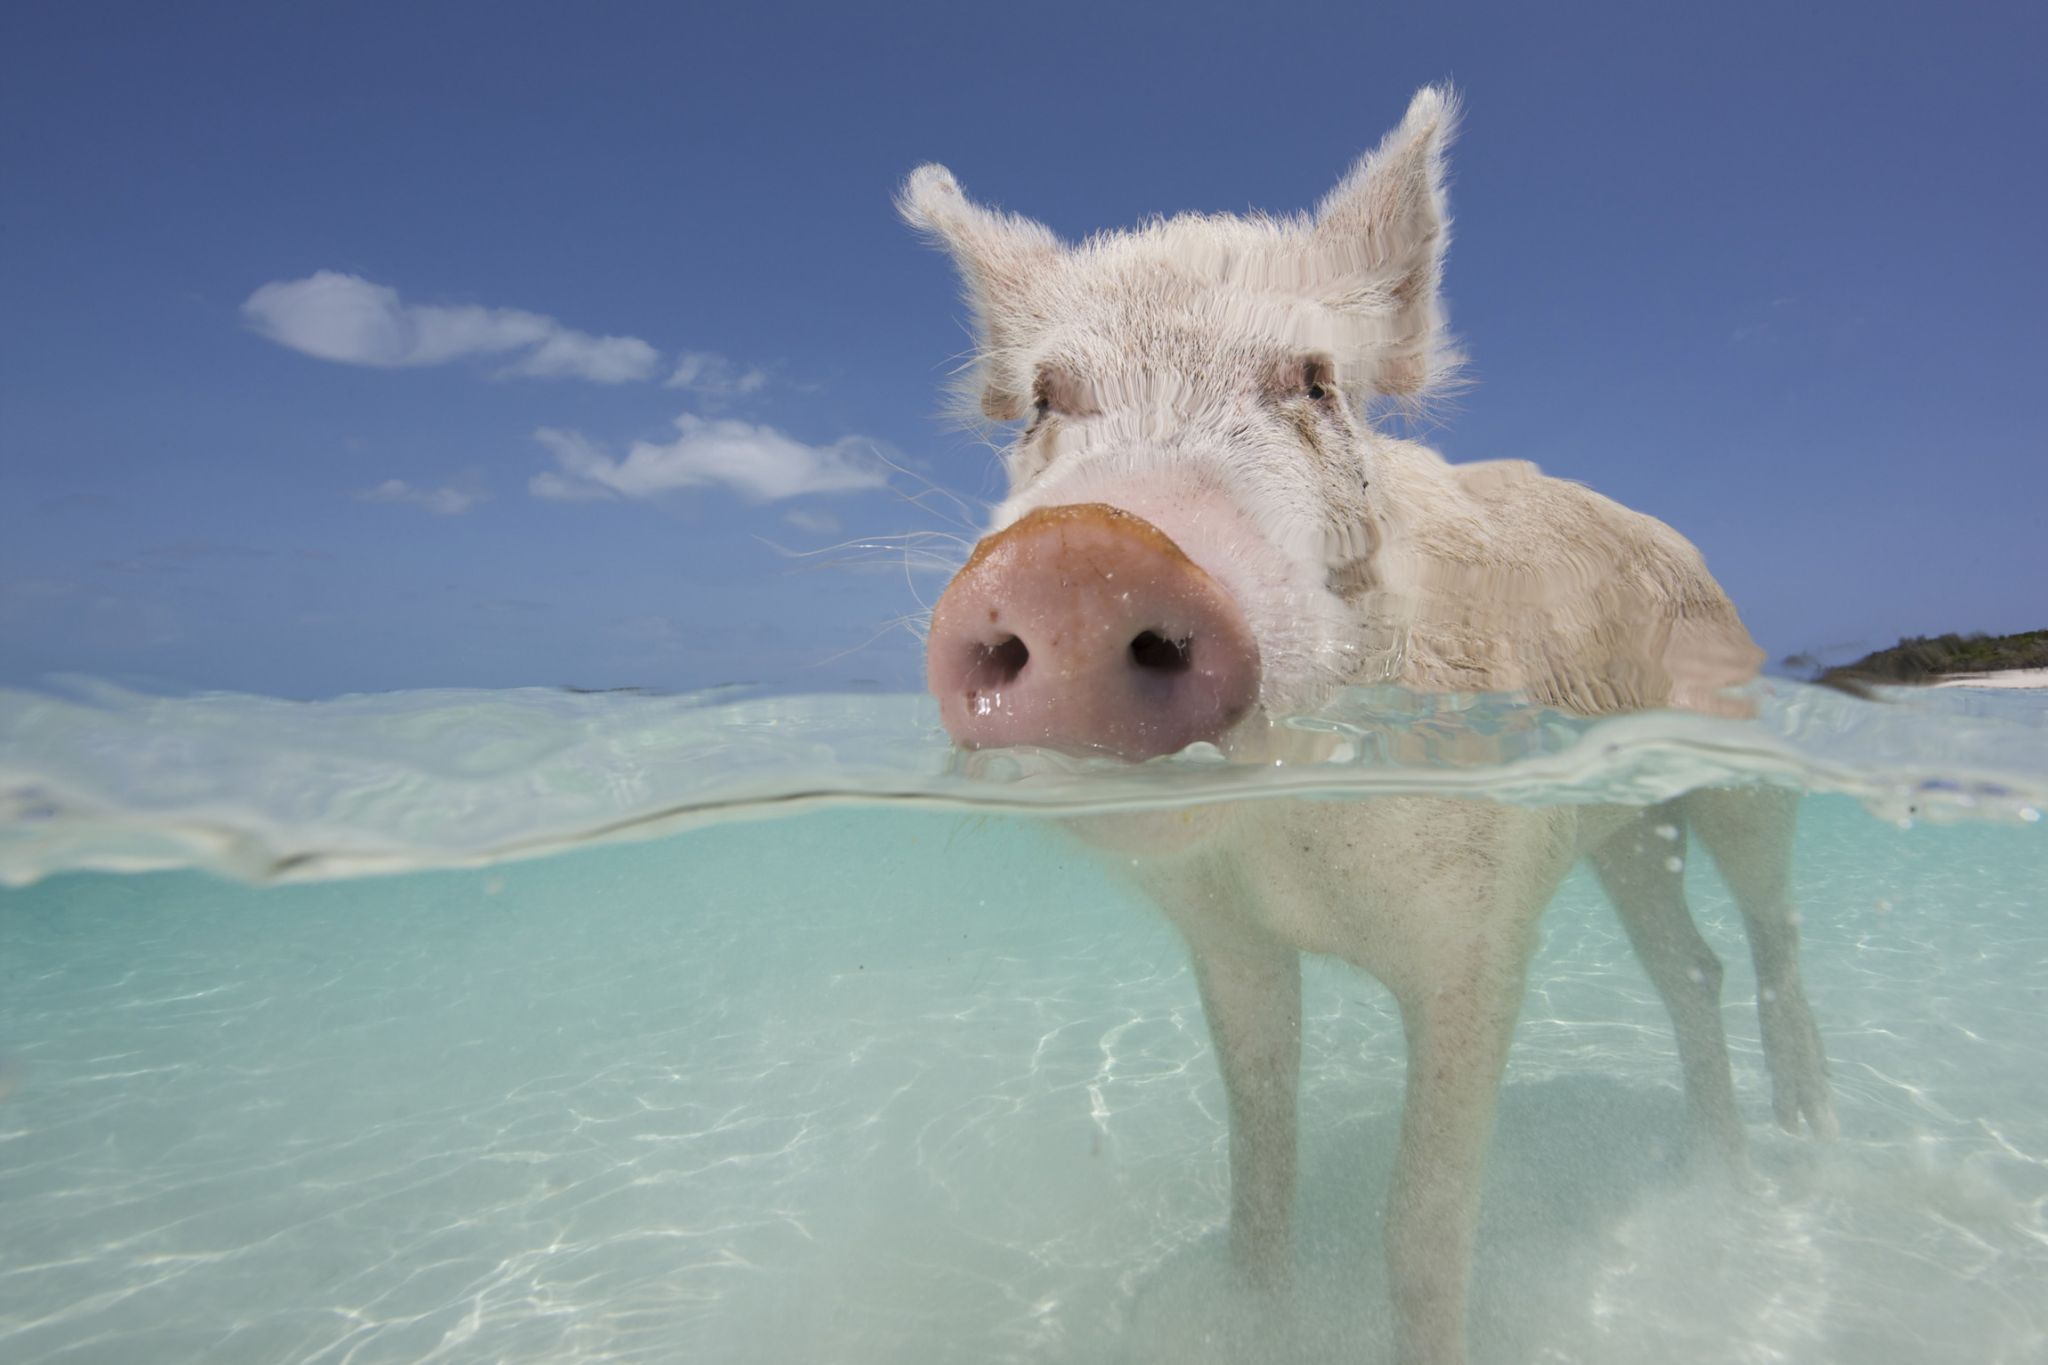 Famous swimming pigs of Bahamas struck by mysterious deaths